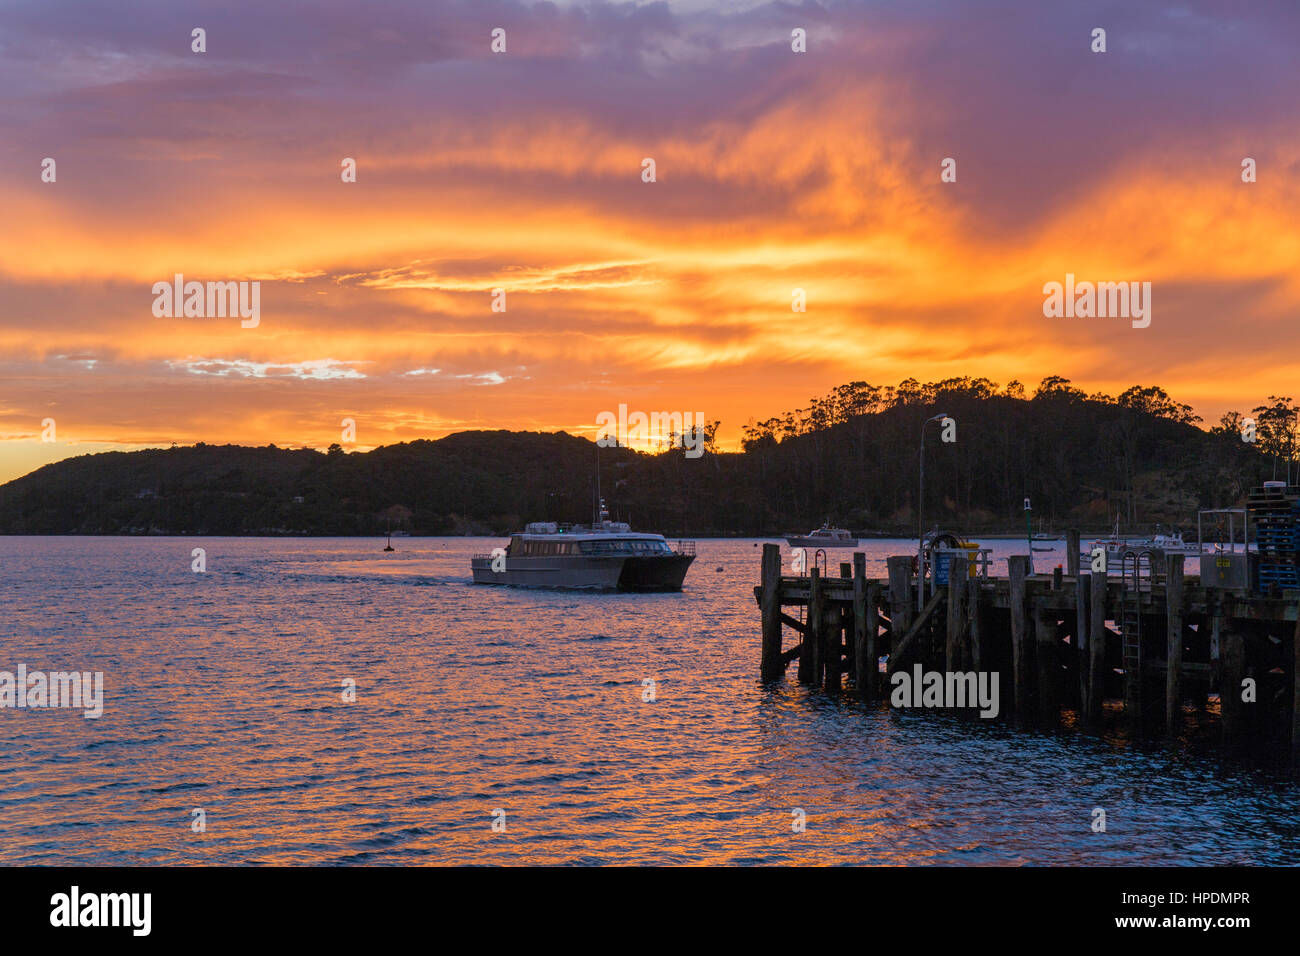 Oban, Stewart Island, Southland, New Zealand. Colourful sky reflected in water at dawn, Halfmoon Bay, ferry approaching - Stock Image